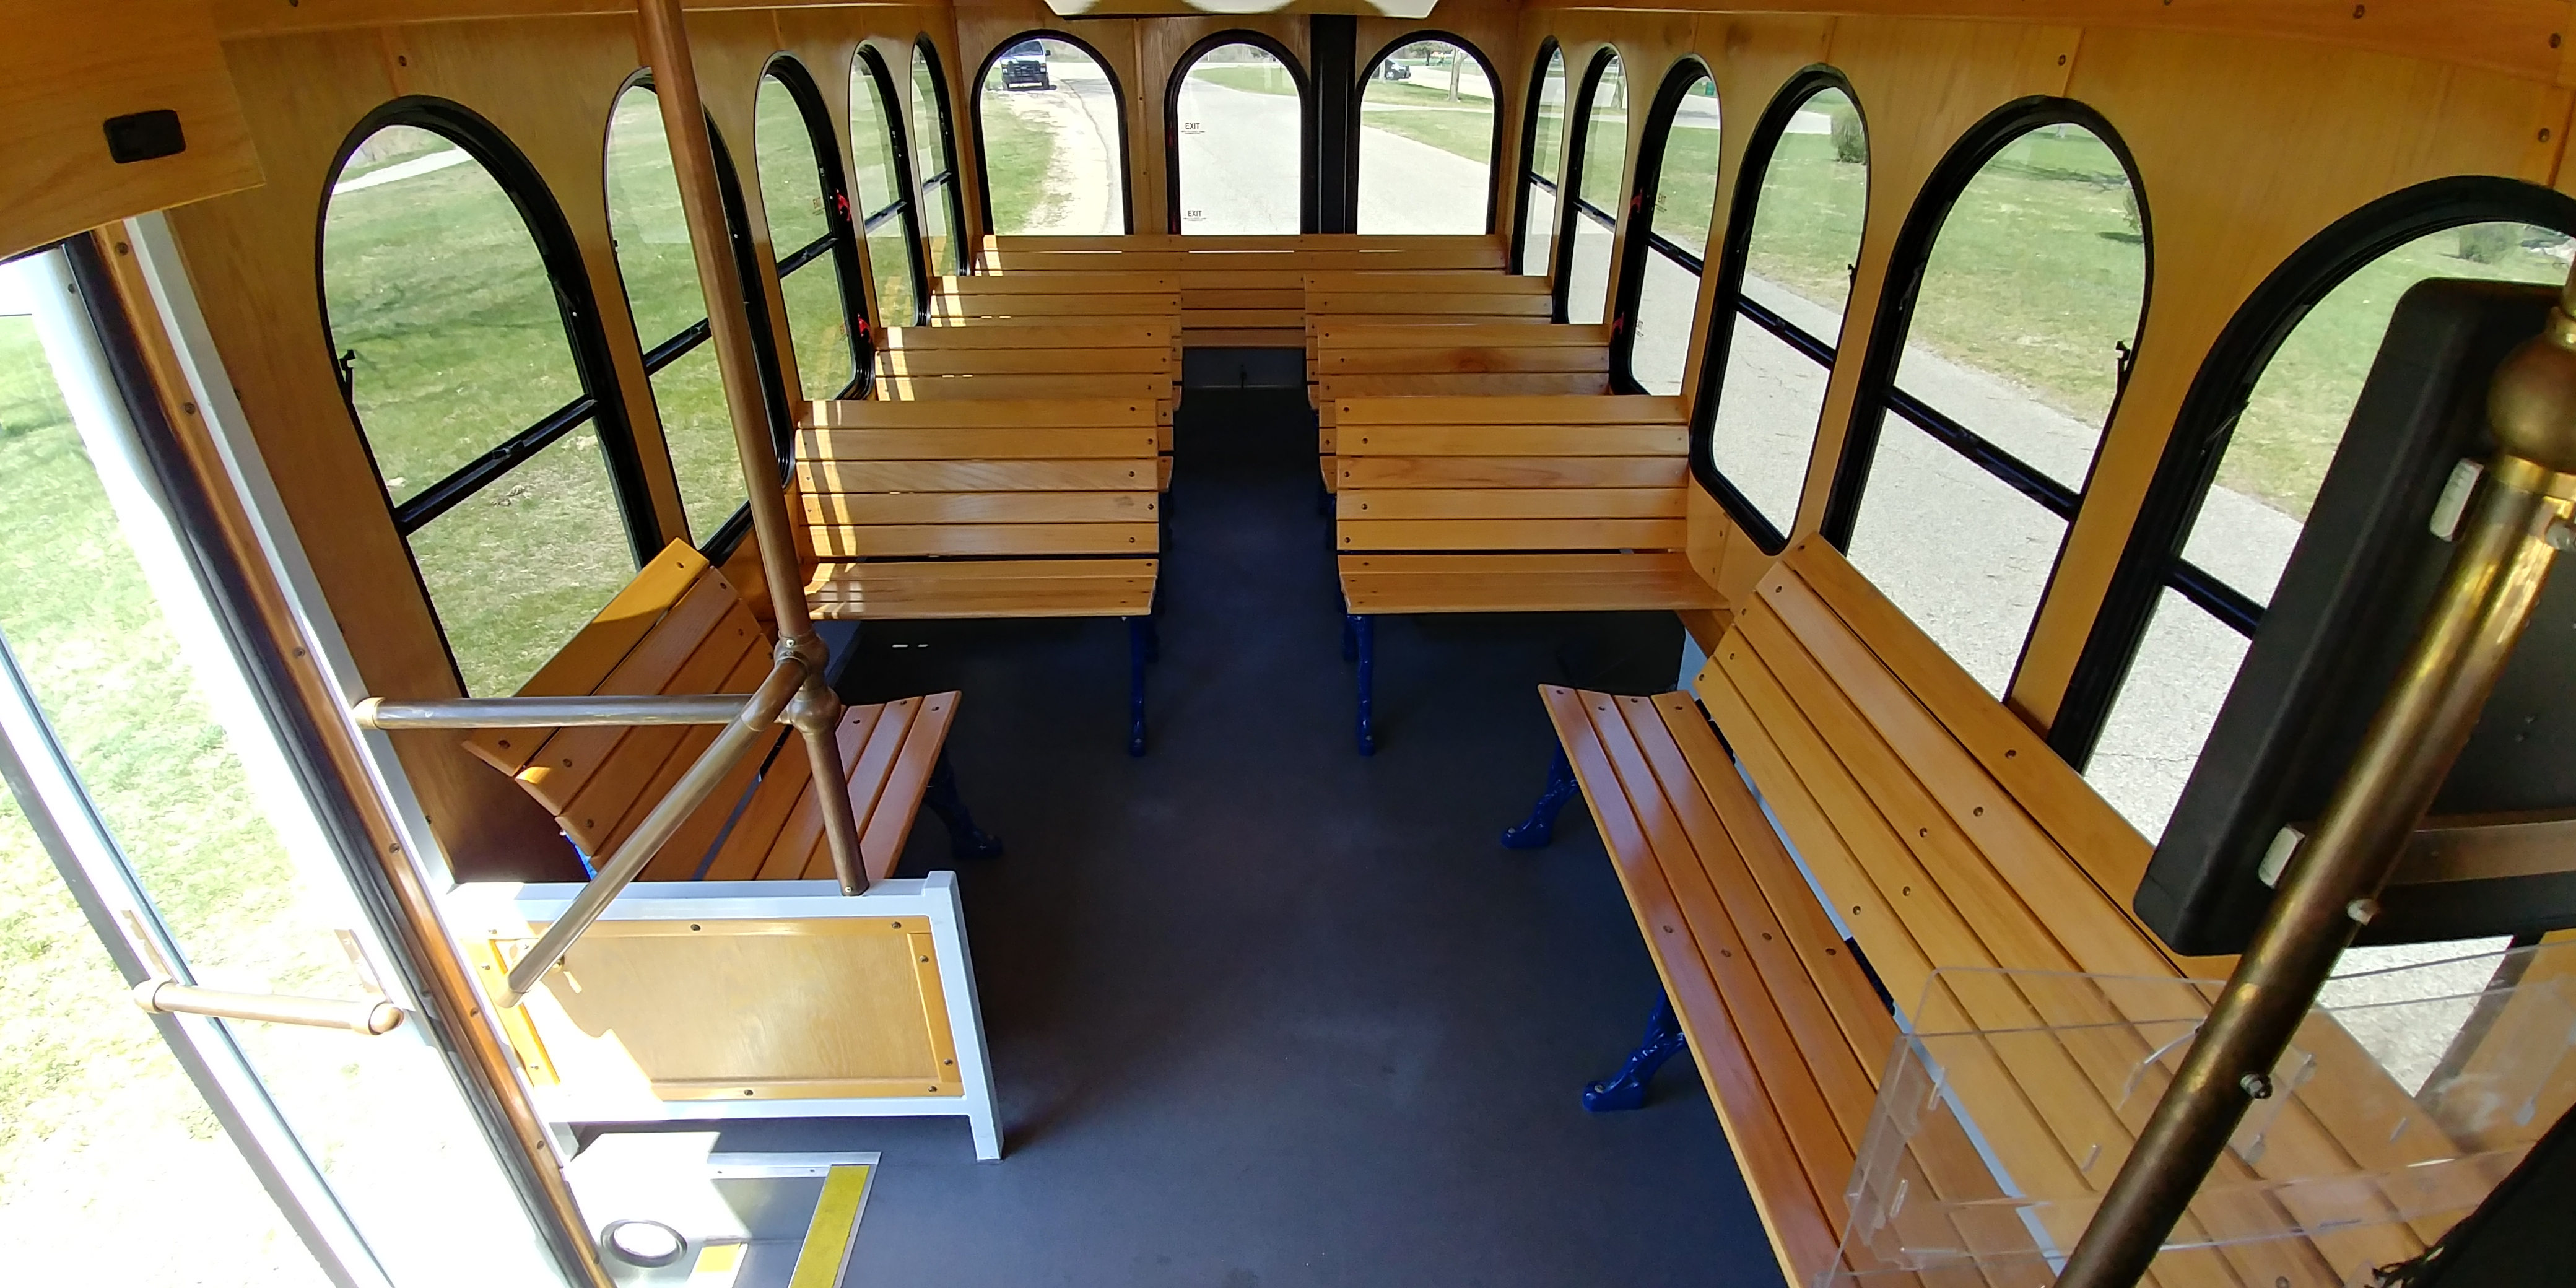 24 Passenger Trolley Interior 2